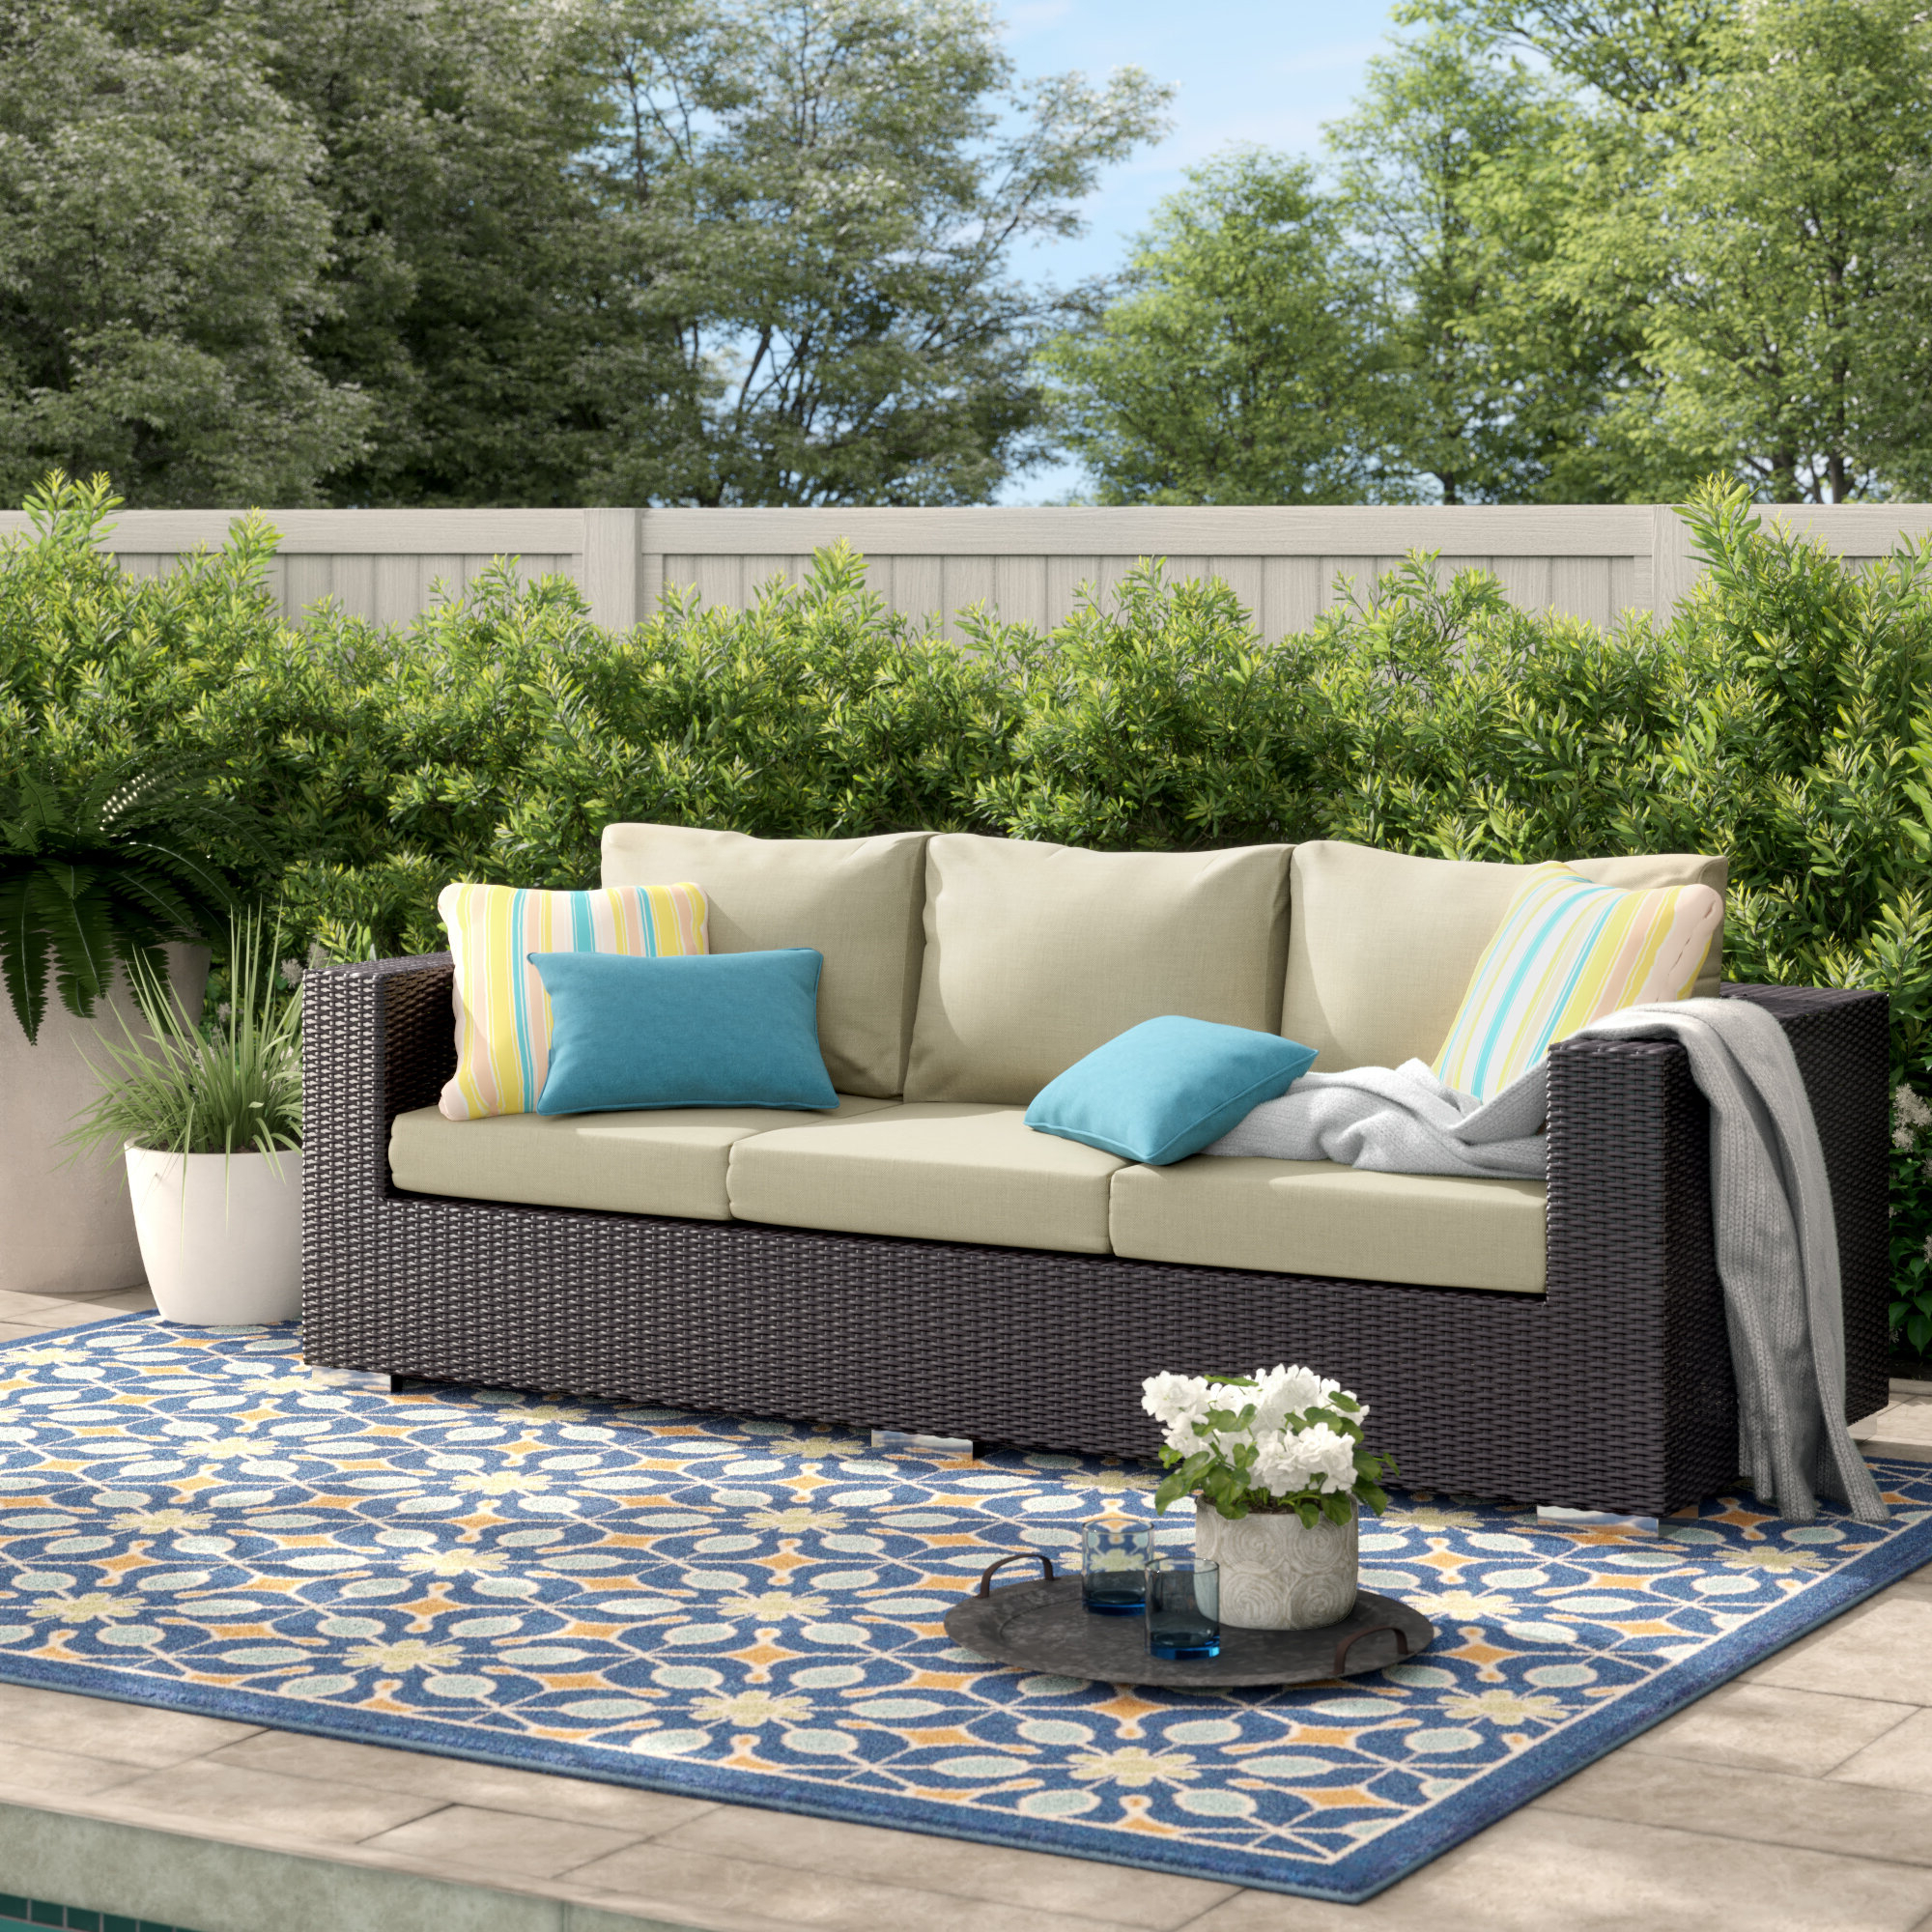 Tripp Sofa With Cushions Within Fashionable Brentwood Patio Sofa With Cushions (View 8 of 20)